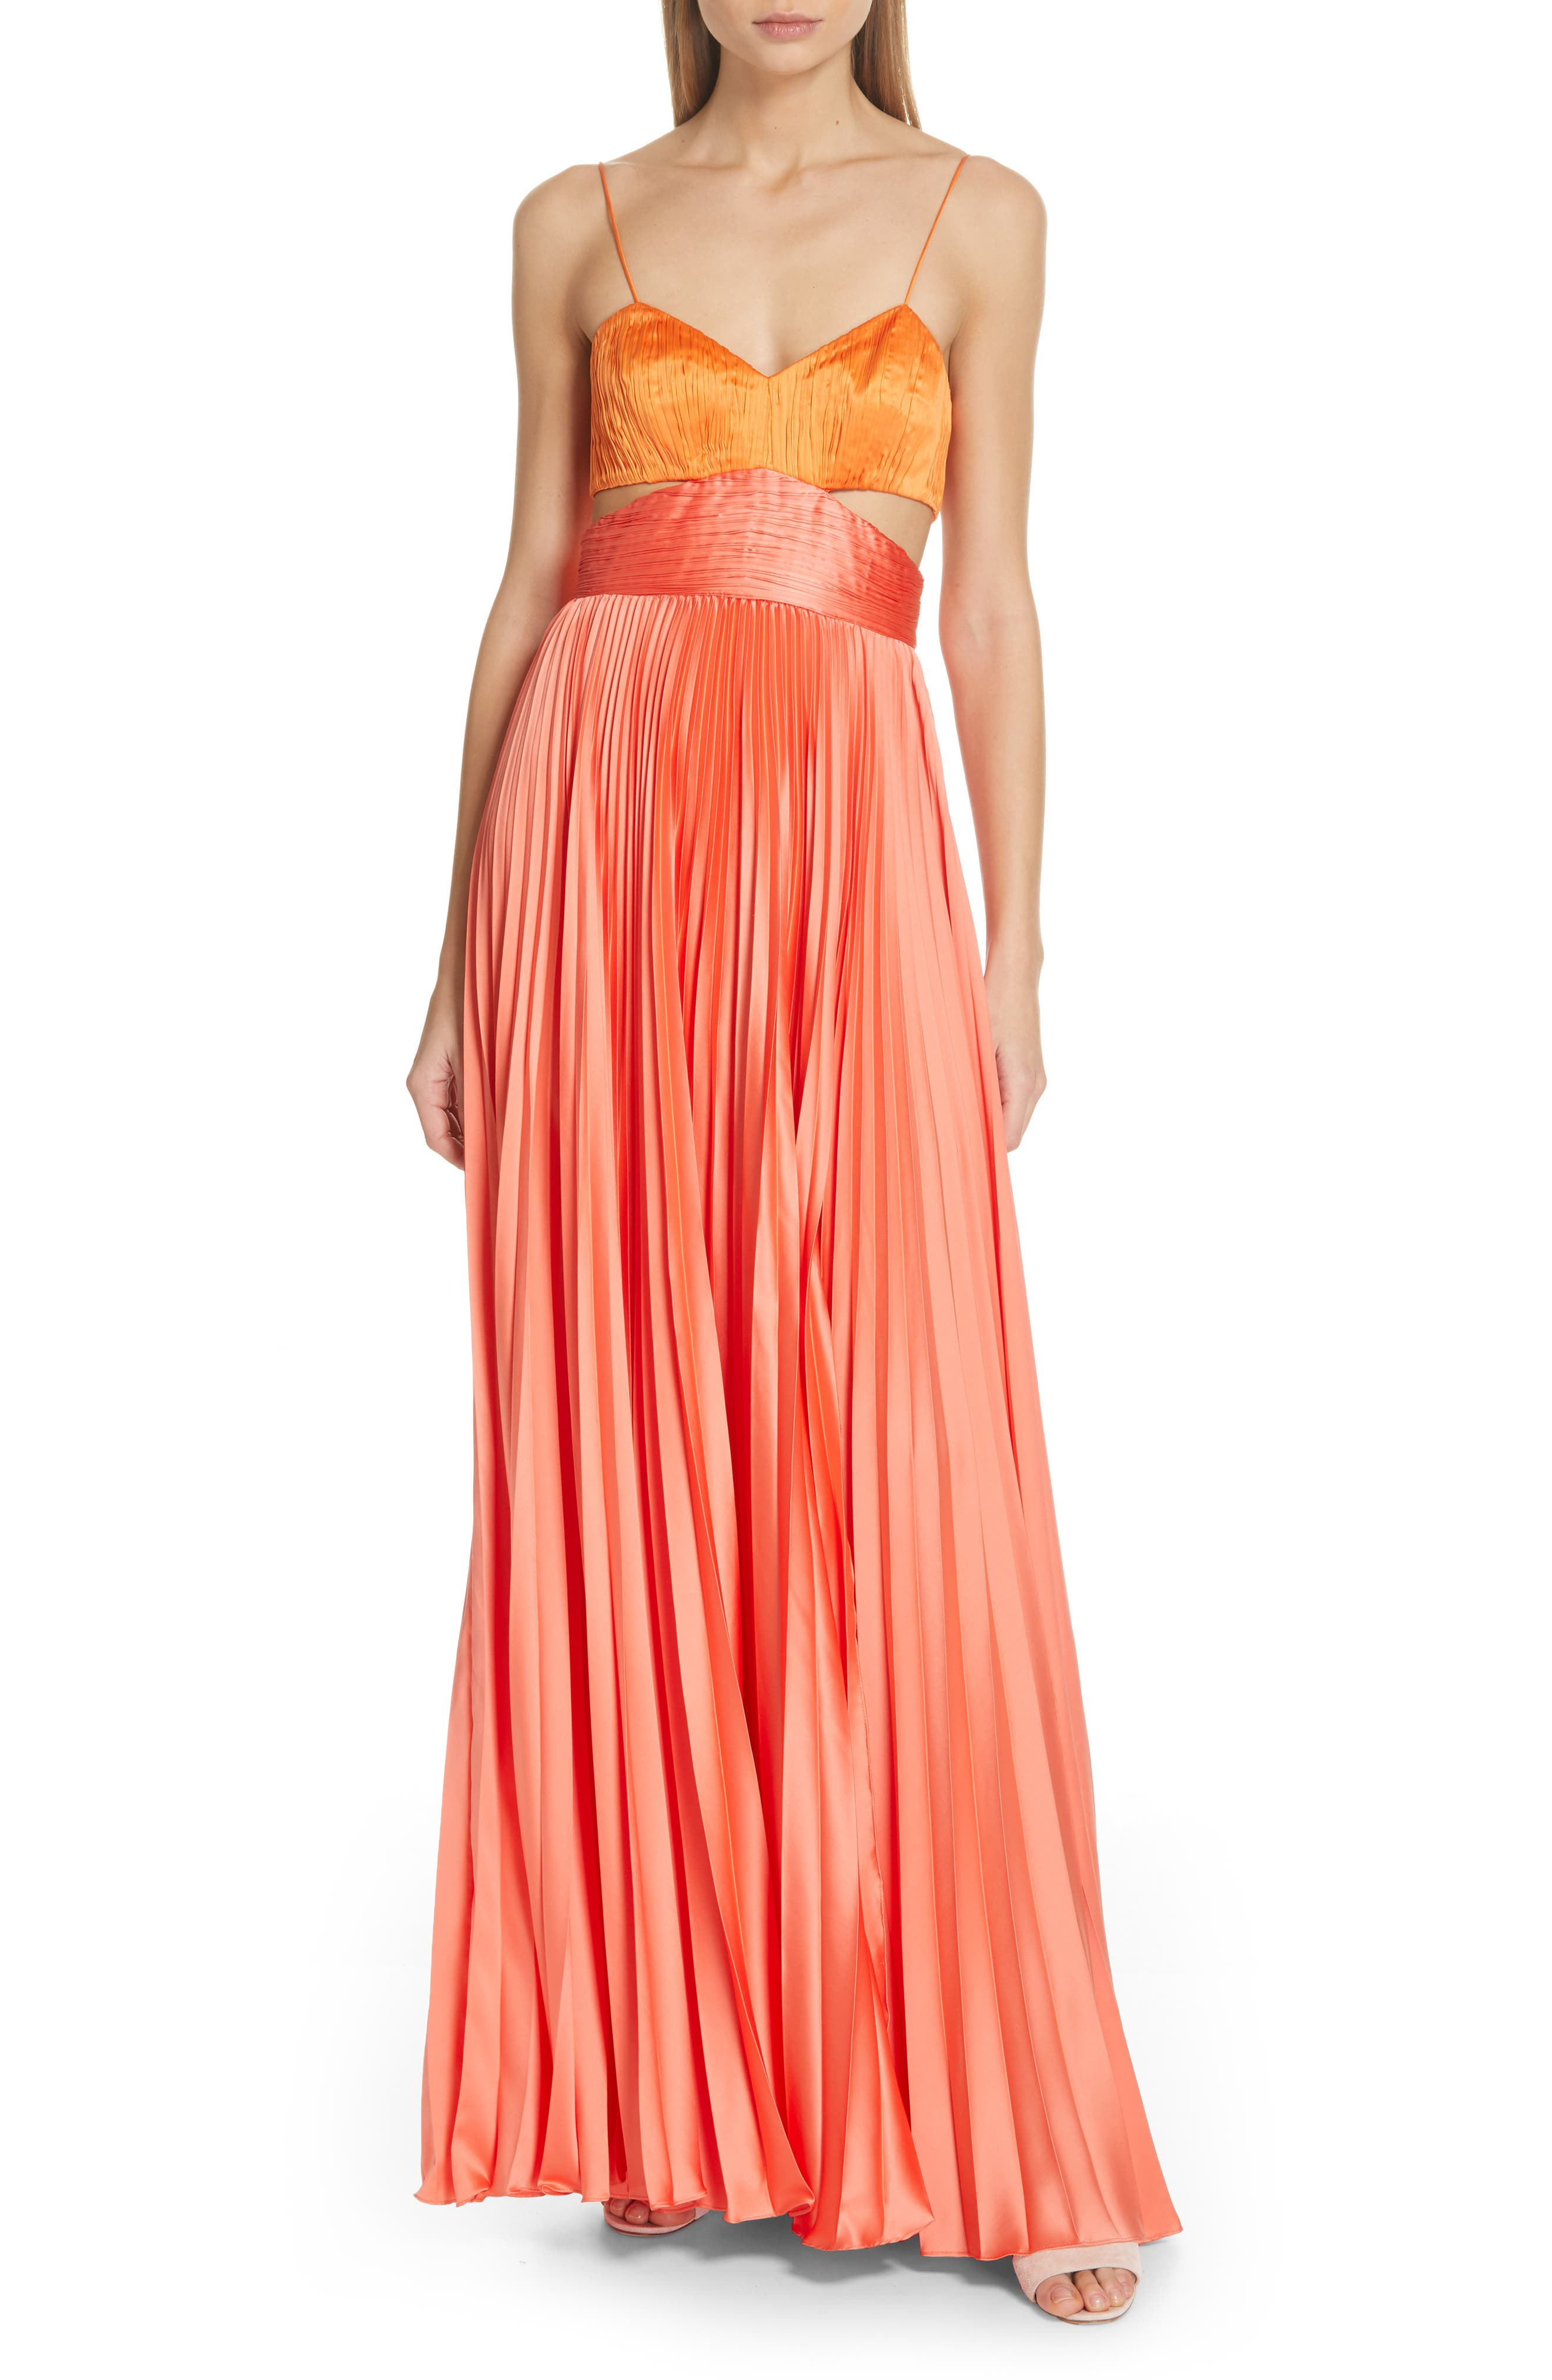 Amur Elodie Cutout Pleated Evening Dress, Orange